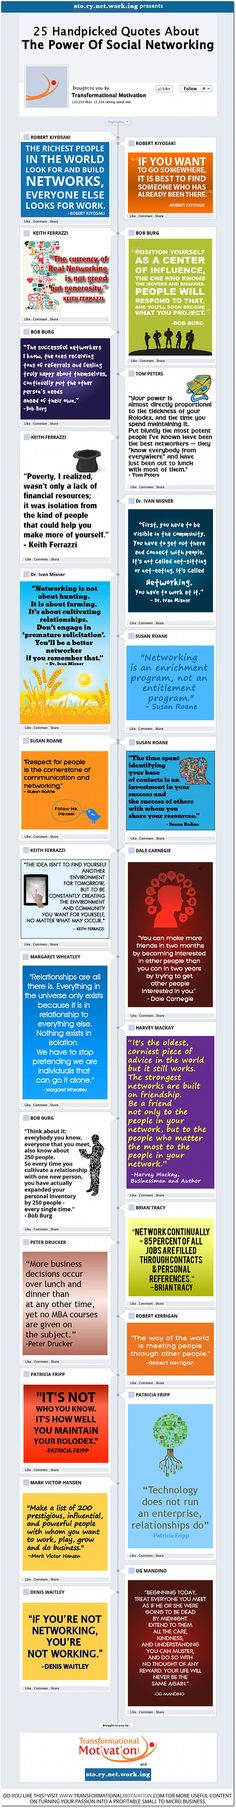 25 quotes about the power of social networking | Articles | Home